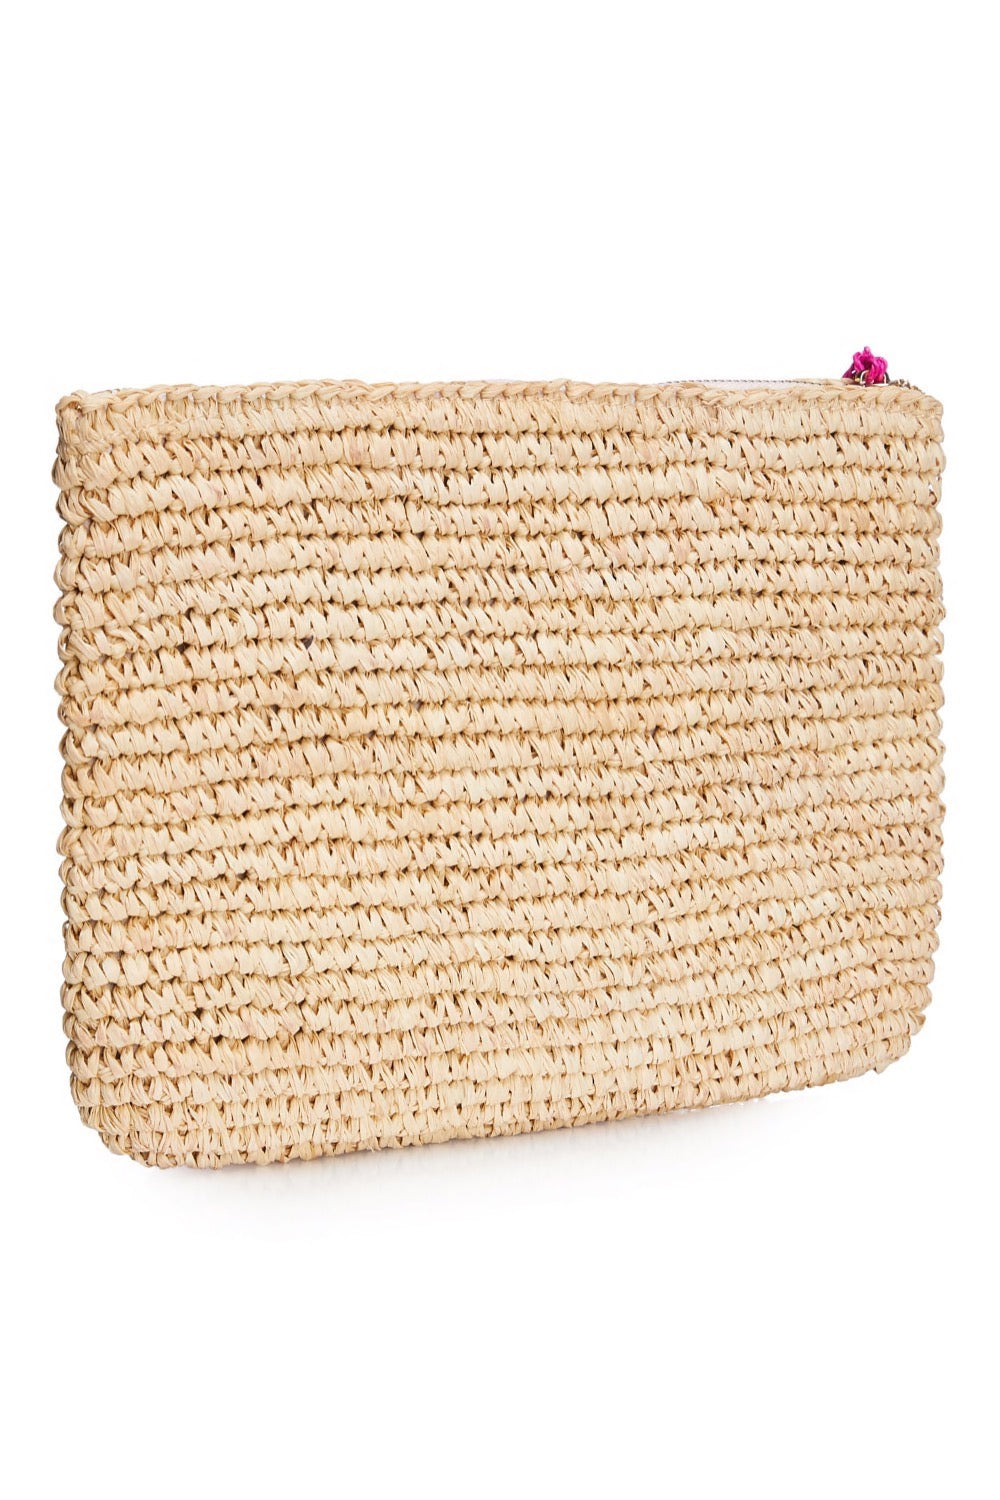 Leopard Embroidered Raffia Clutch - Pink